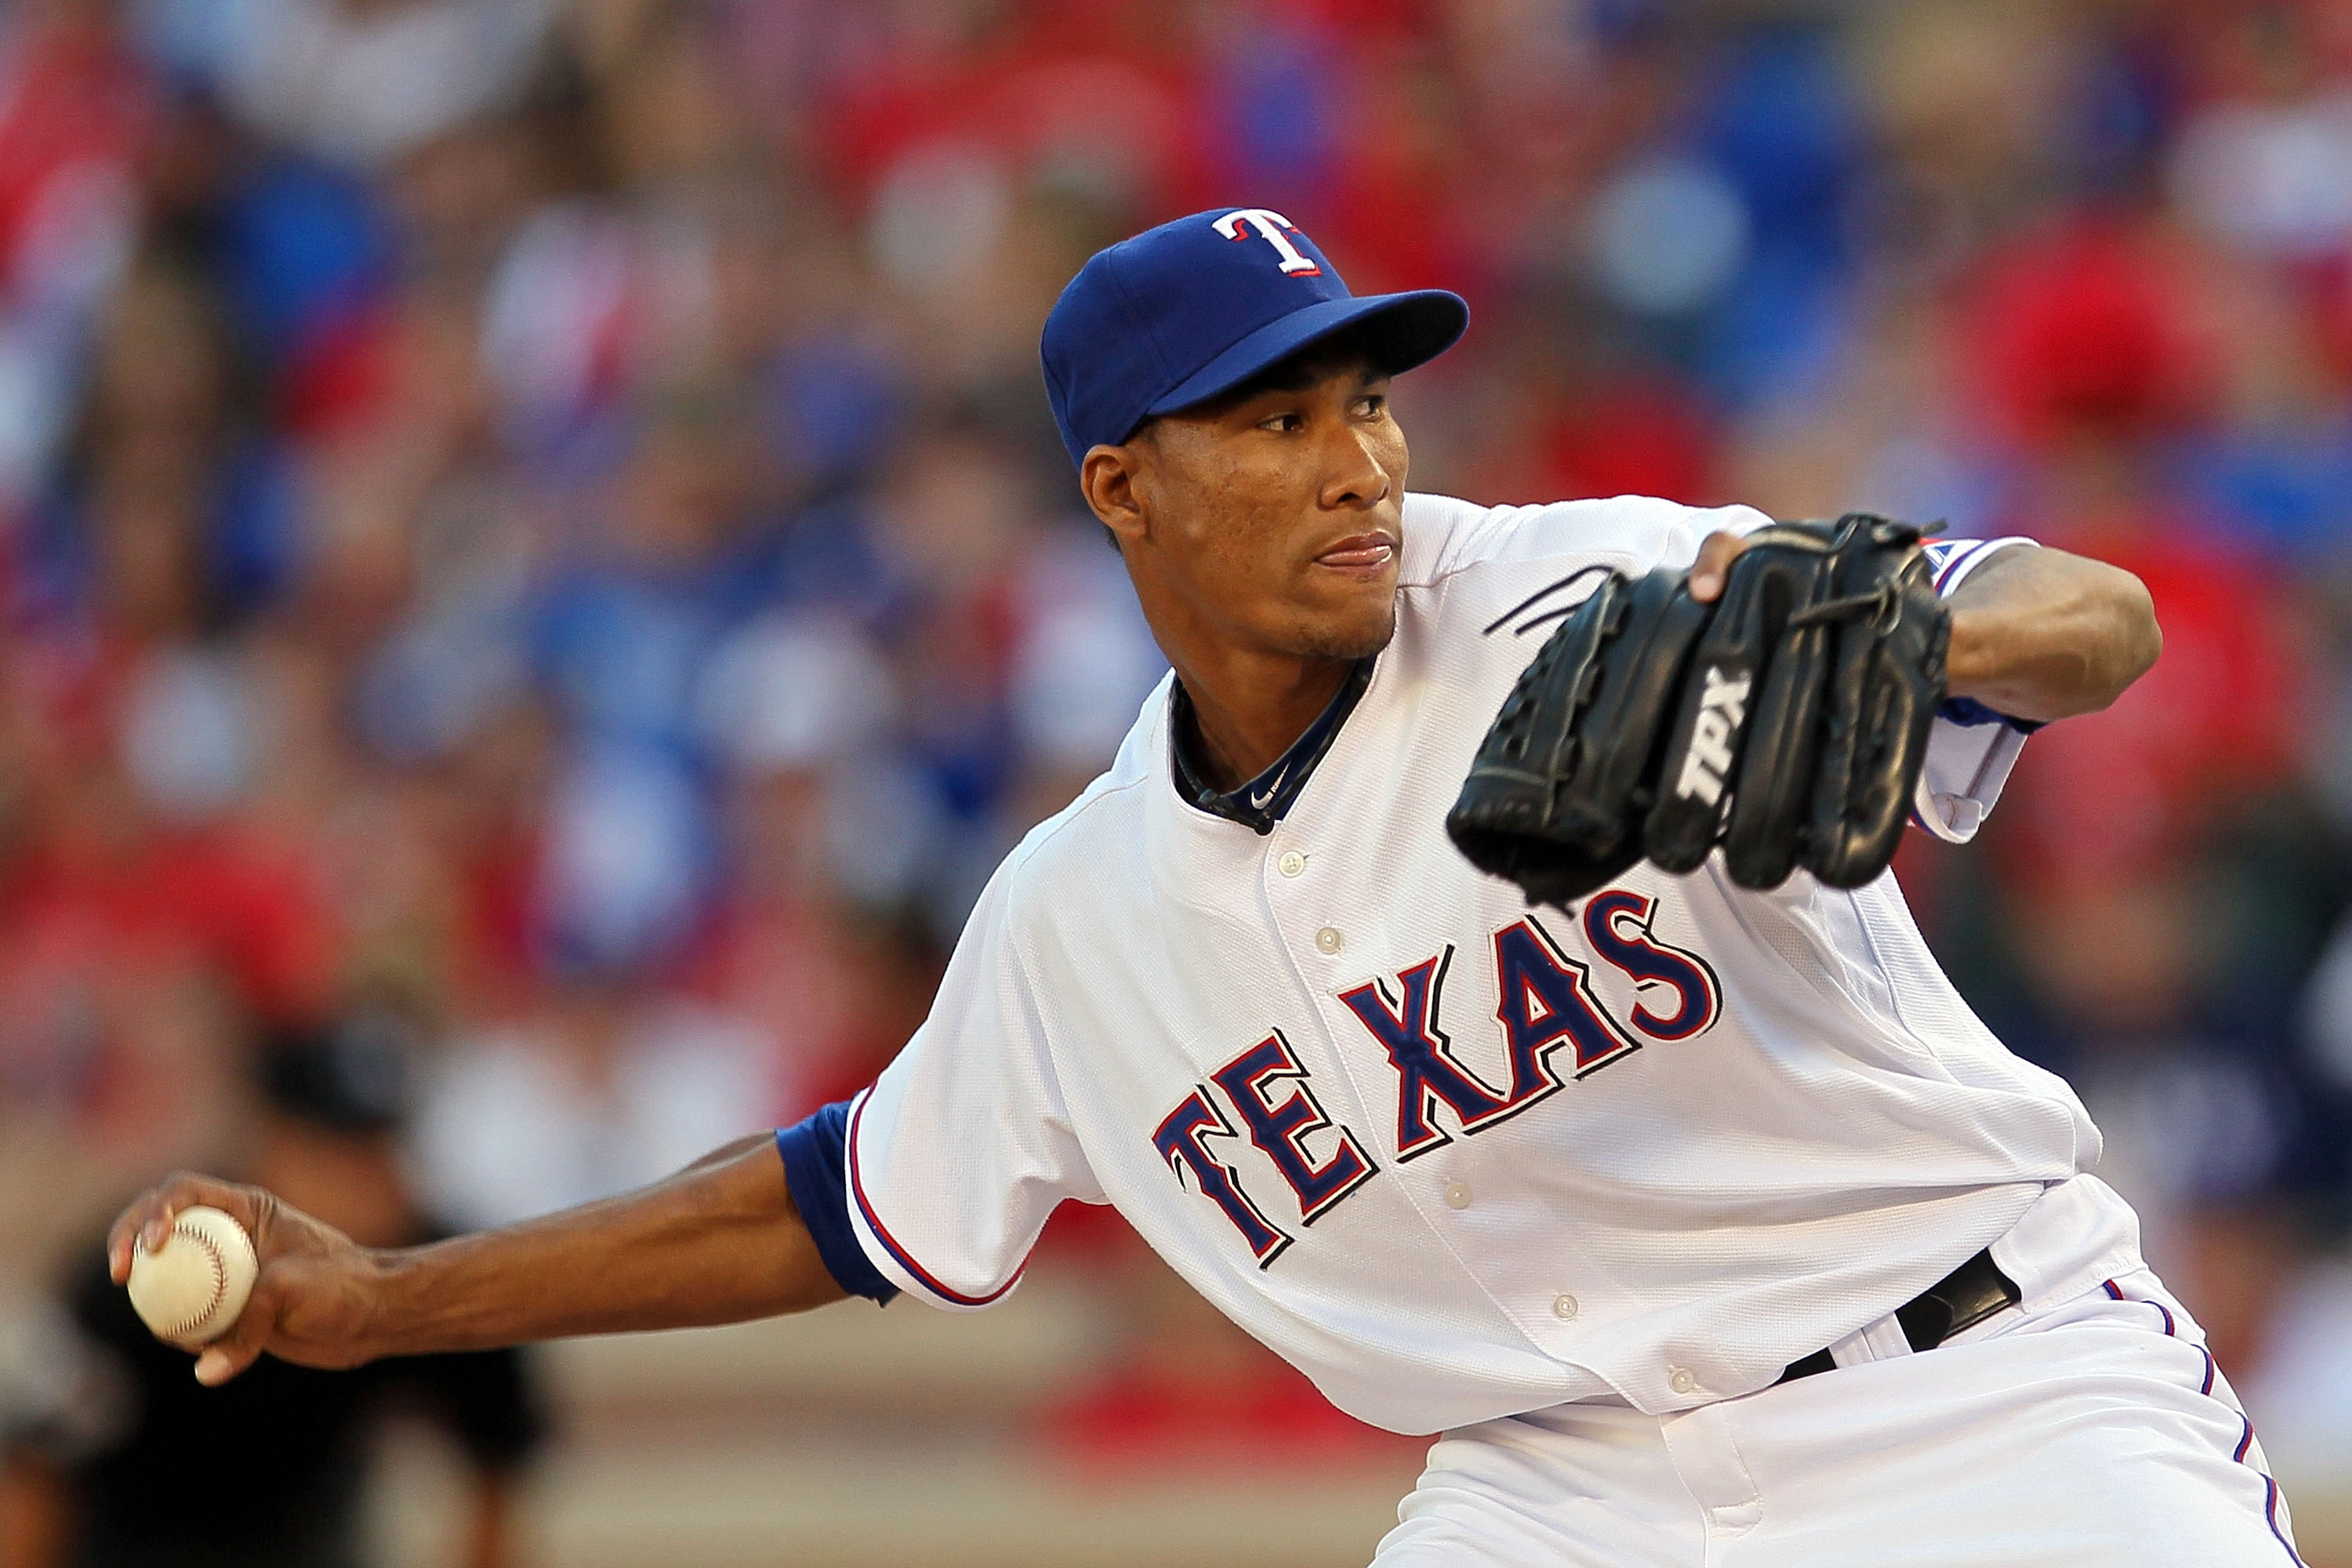 ARLINGTON, TX - OCTOBER 16:  Alexi Ogando #64 of the Texas Rangers pitches against the New York Yankees in Game Two of the ALCS during the 2010 MLB Playoffs at Rangers Ballpark in Arlington on October 16, 2010 in Arlington, Texas.  (Photo by Stephen Dunn/